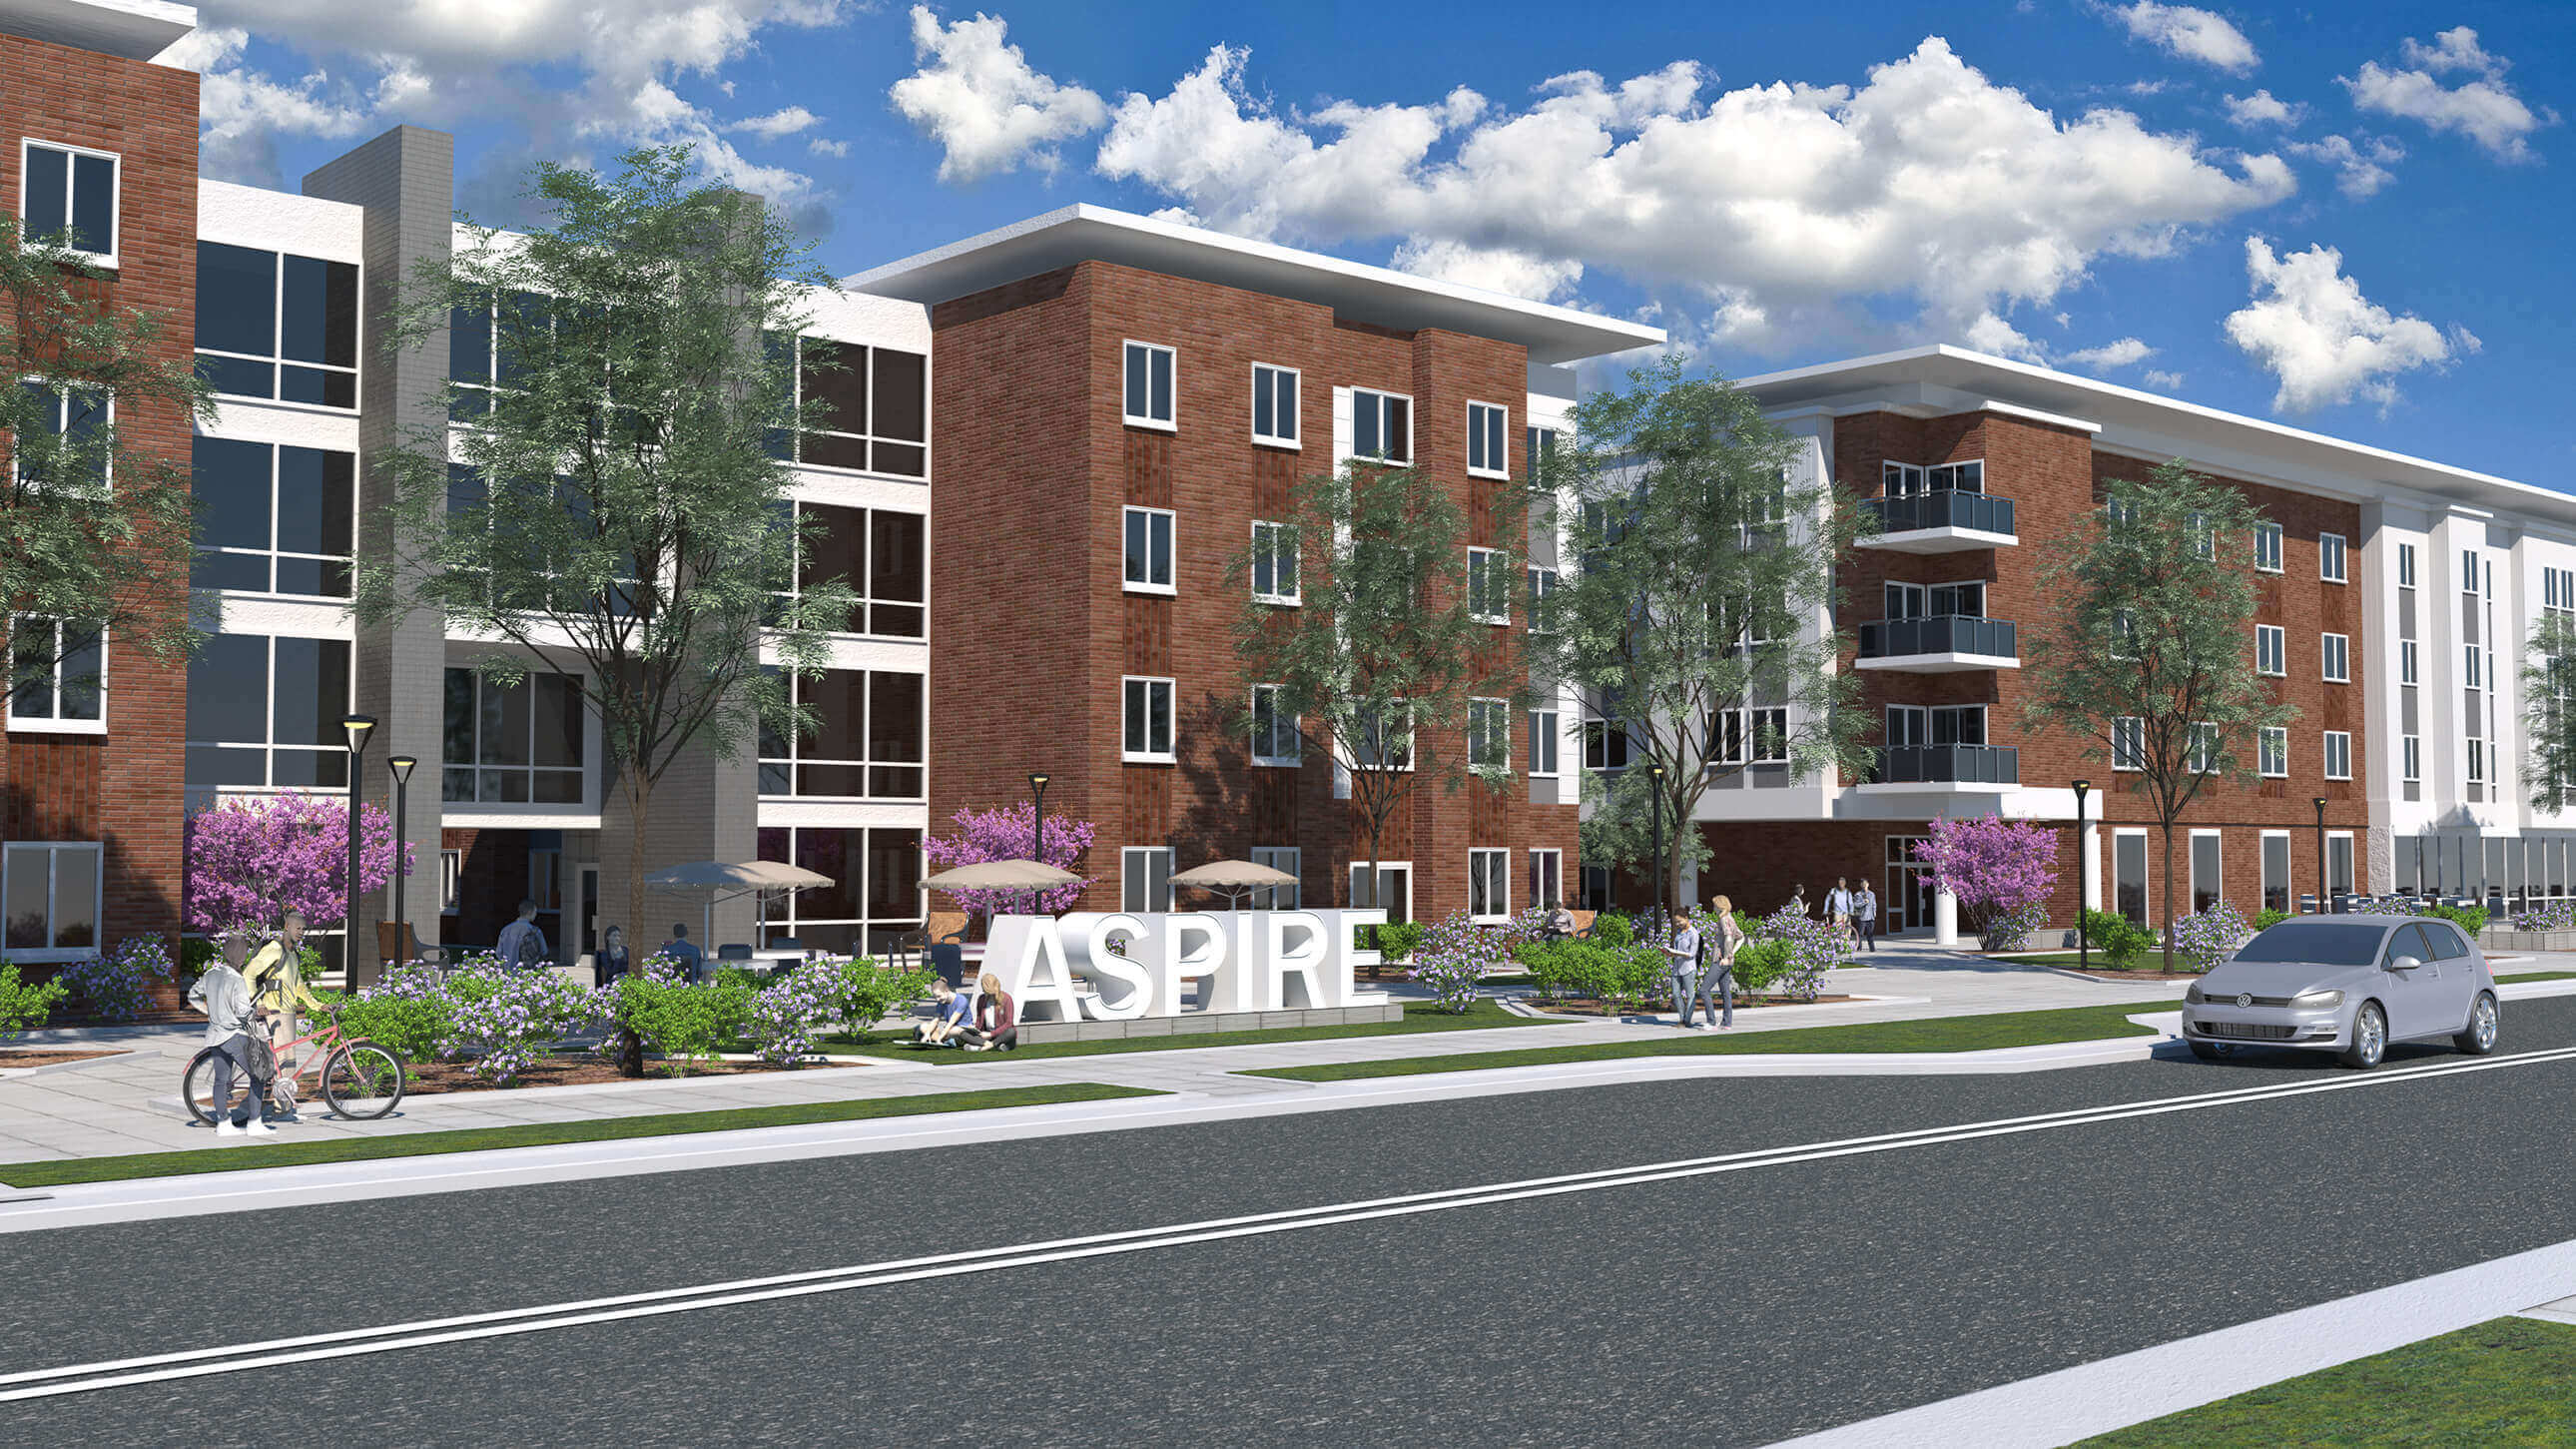 Aspire at Discovery Park